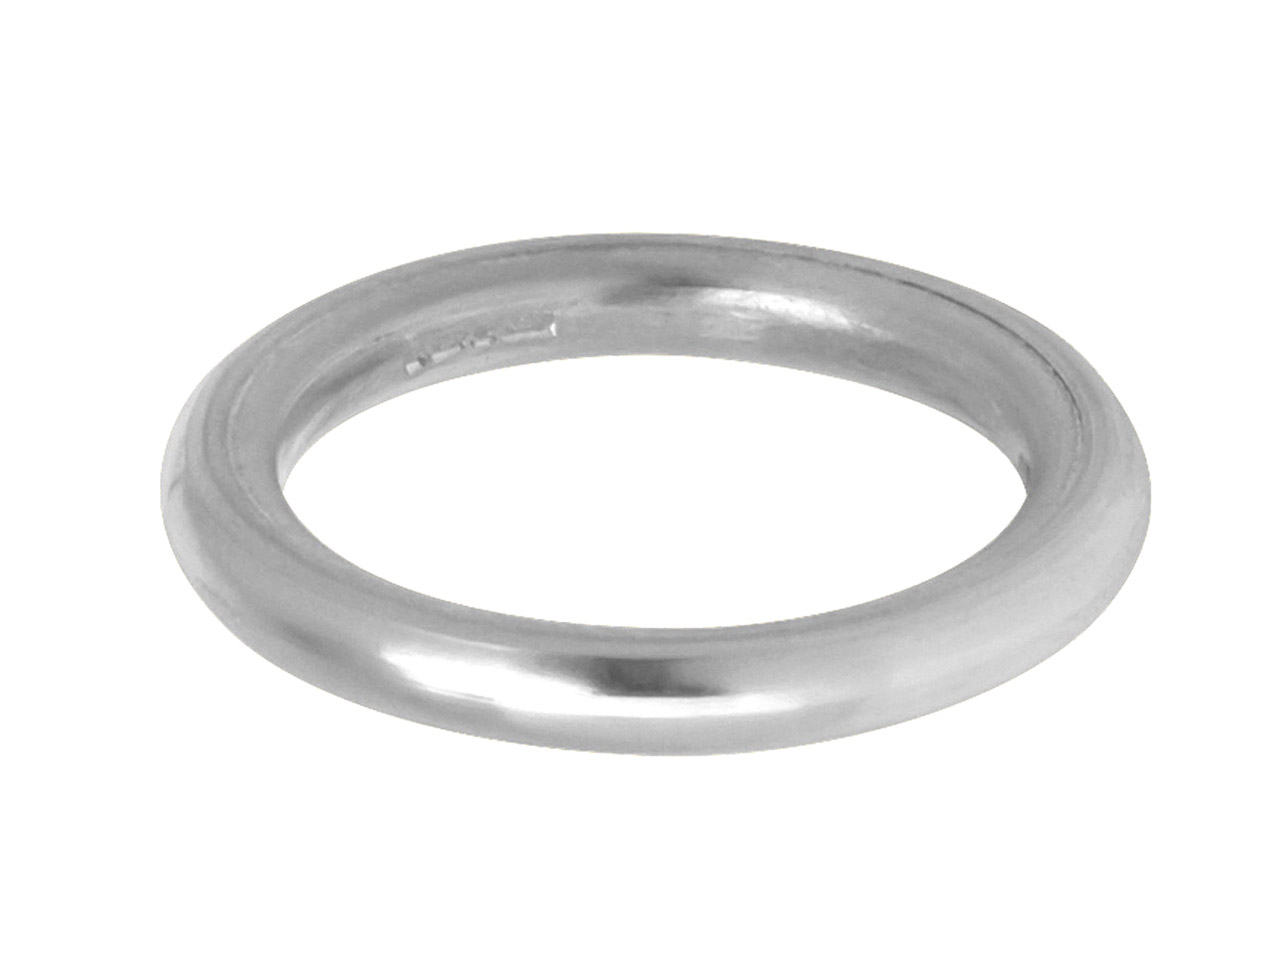 Silver Halo Wedding Ring 3.0mm,    Size K, 4.4g Heavy Weight,         Hallmarked, Wall Thickness 3.00mm